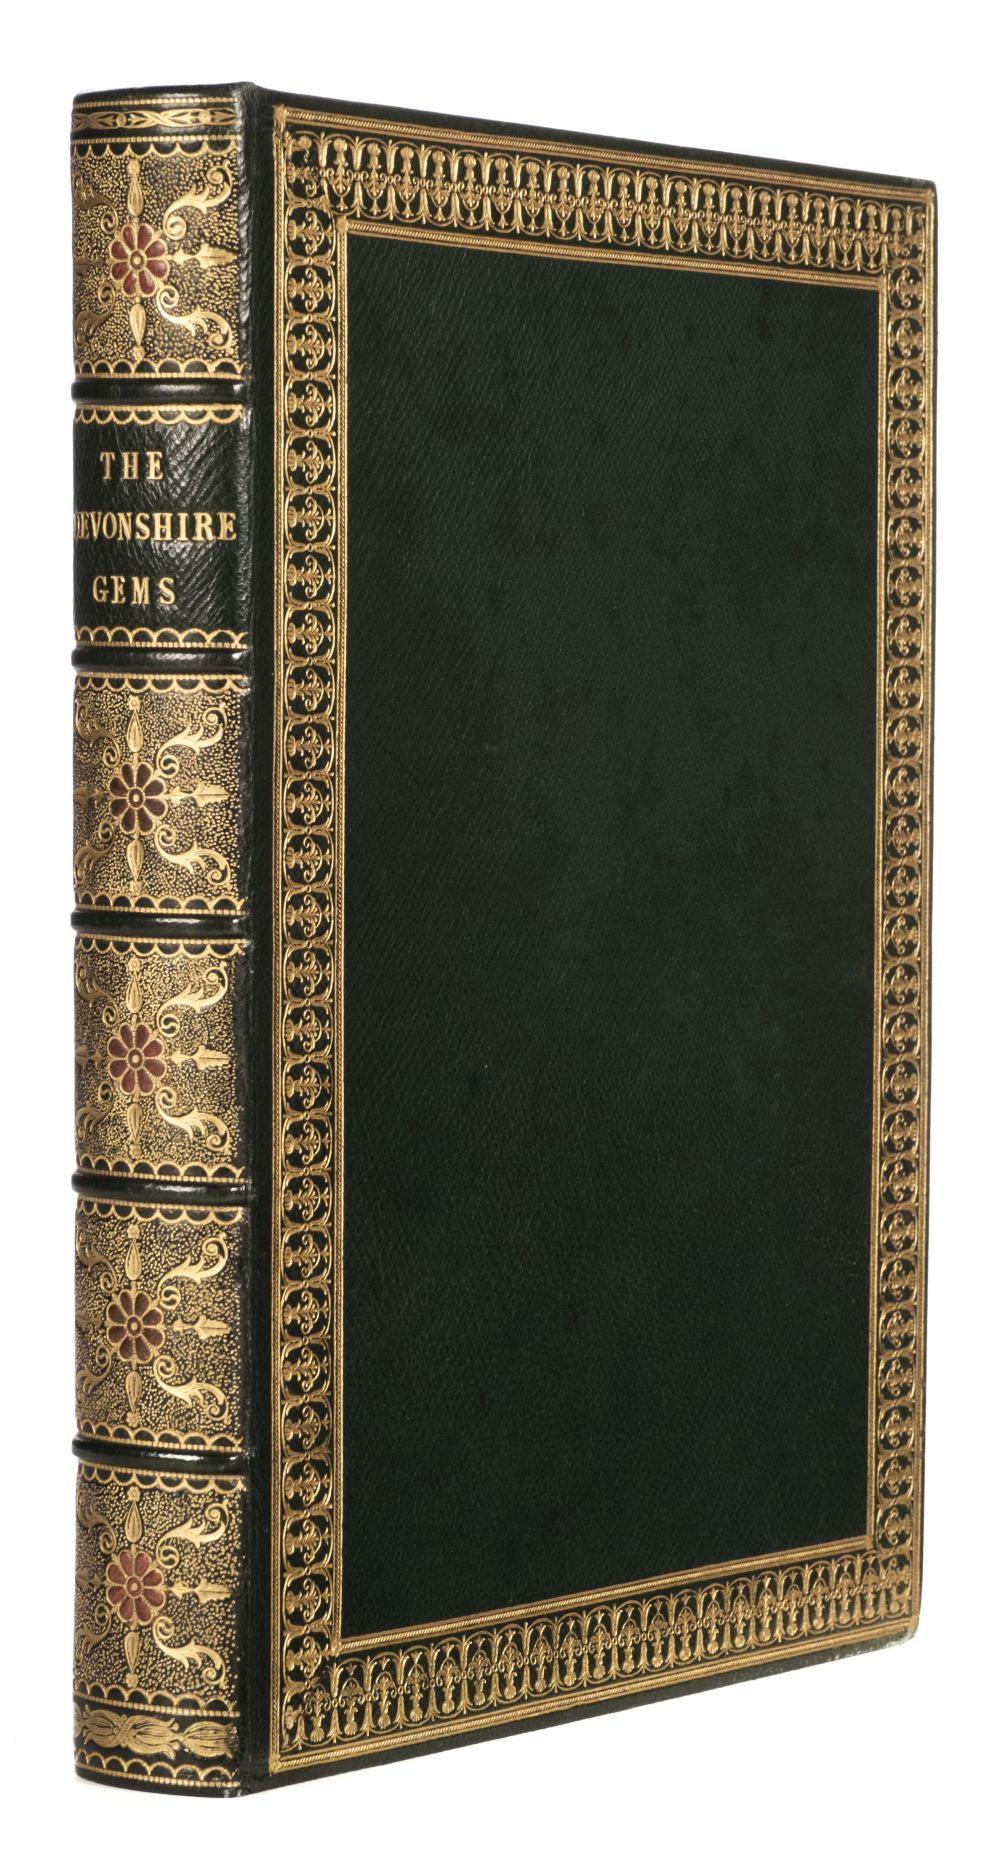 Devonshire Gems. Duke of Devonshire's Collection of Gems, privately printed, circa 1790 - Image 3 of 16